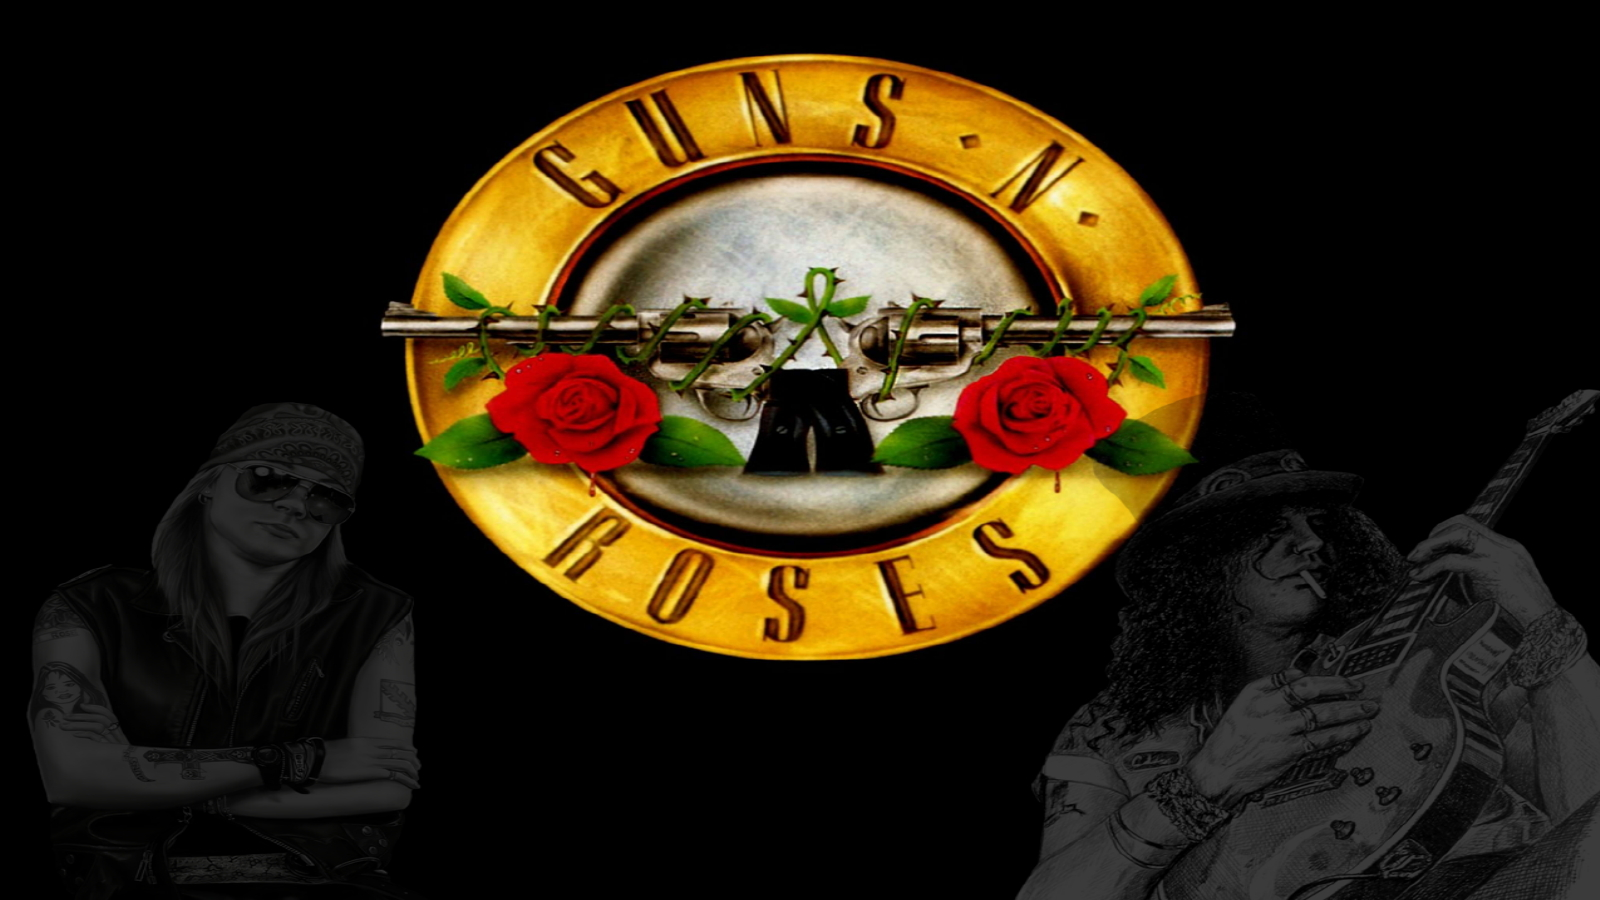 Guns & Roses Wallpaper And Background Image